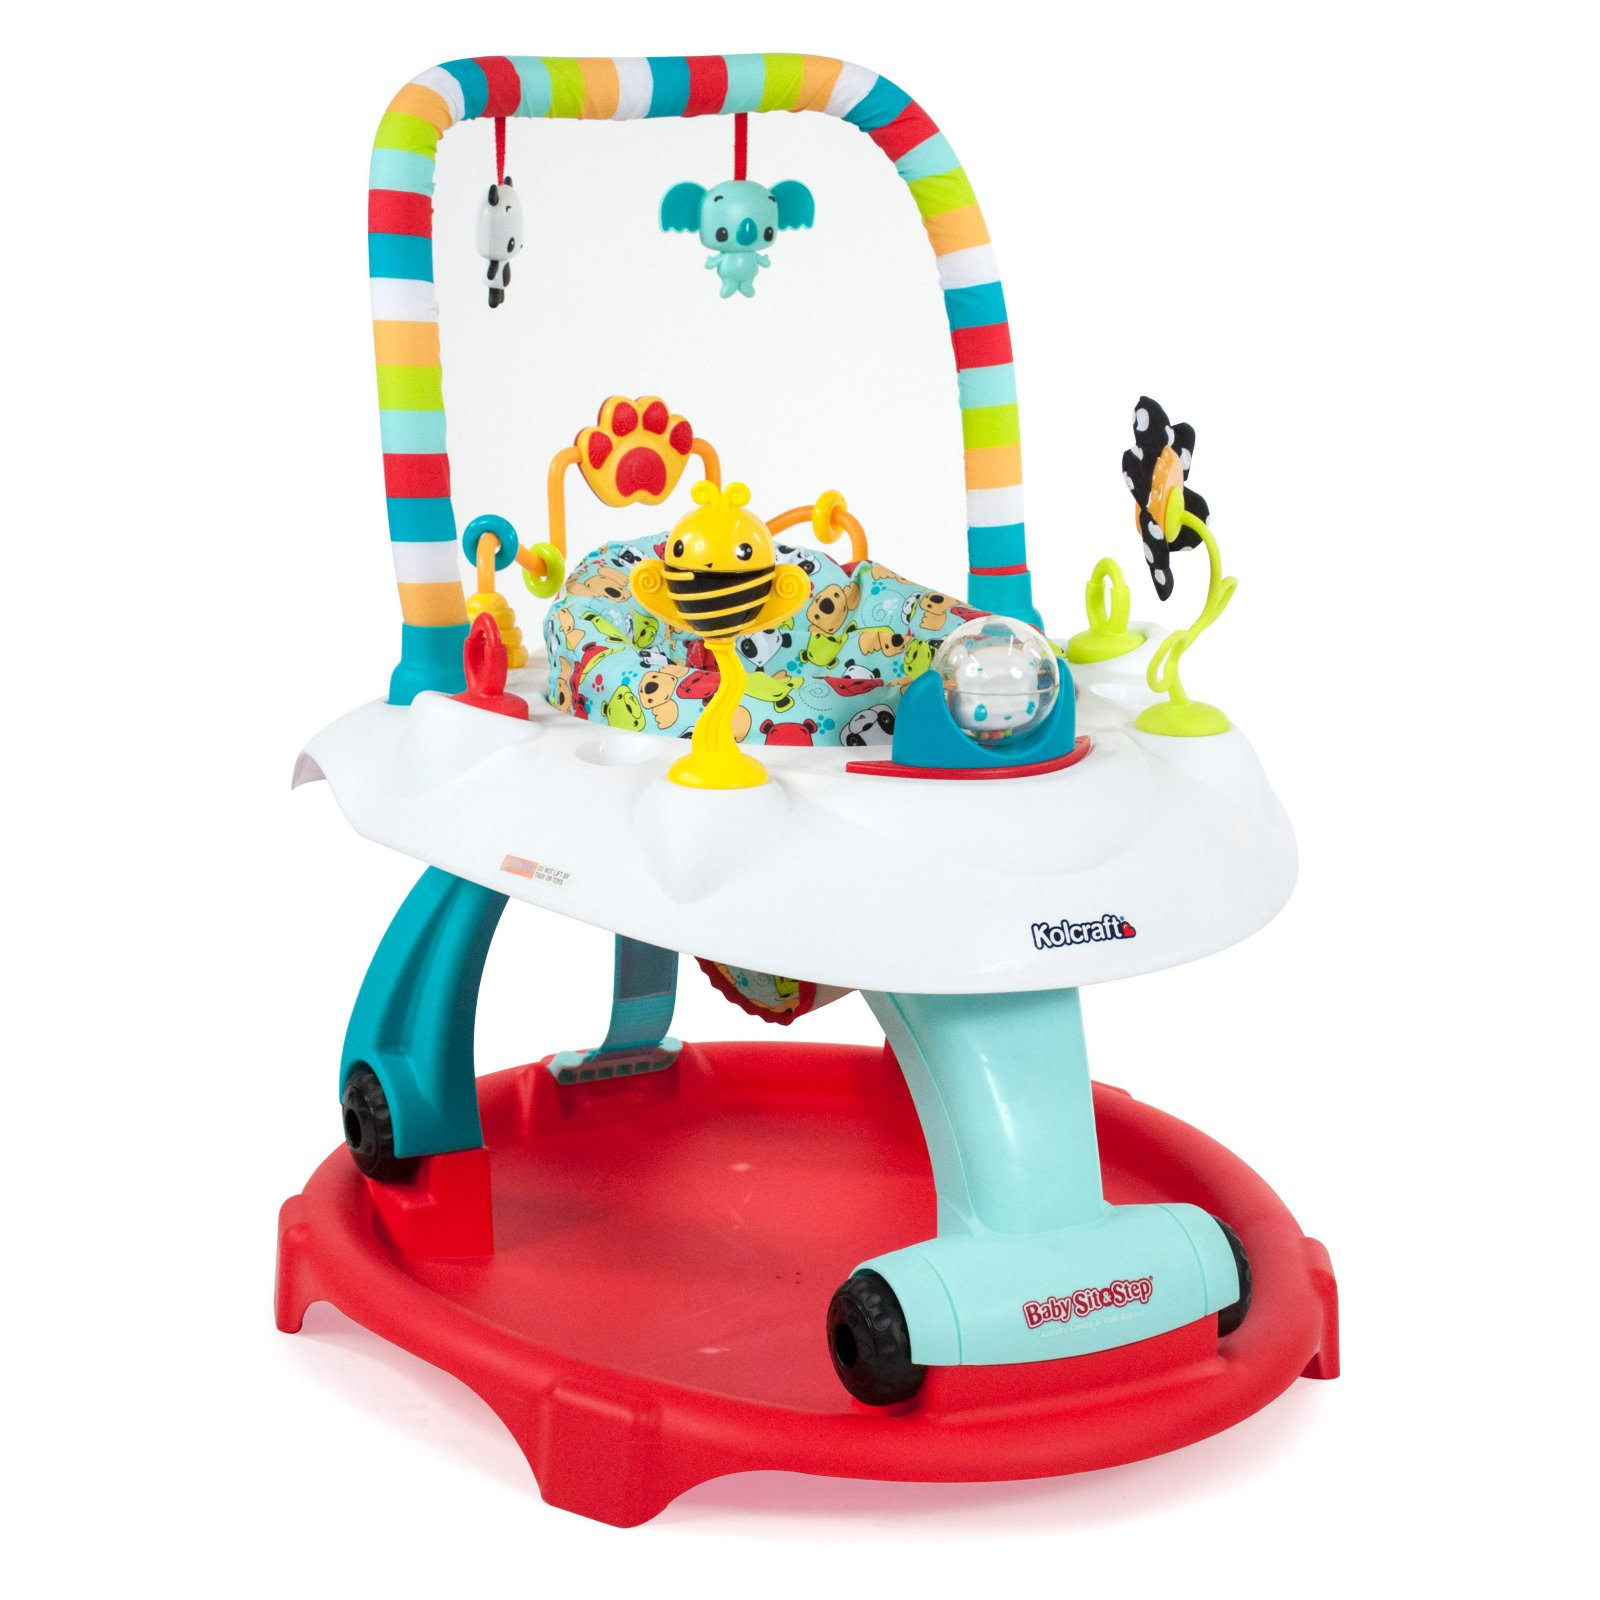 Kolcraft Baby Sit & Step 2-in-1 Activity Center, Bear Hugs